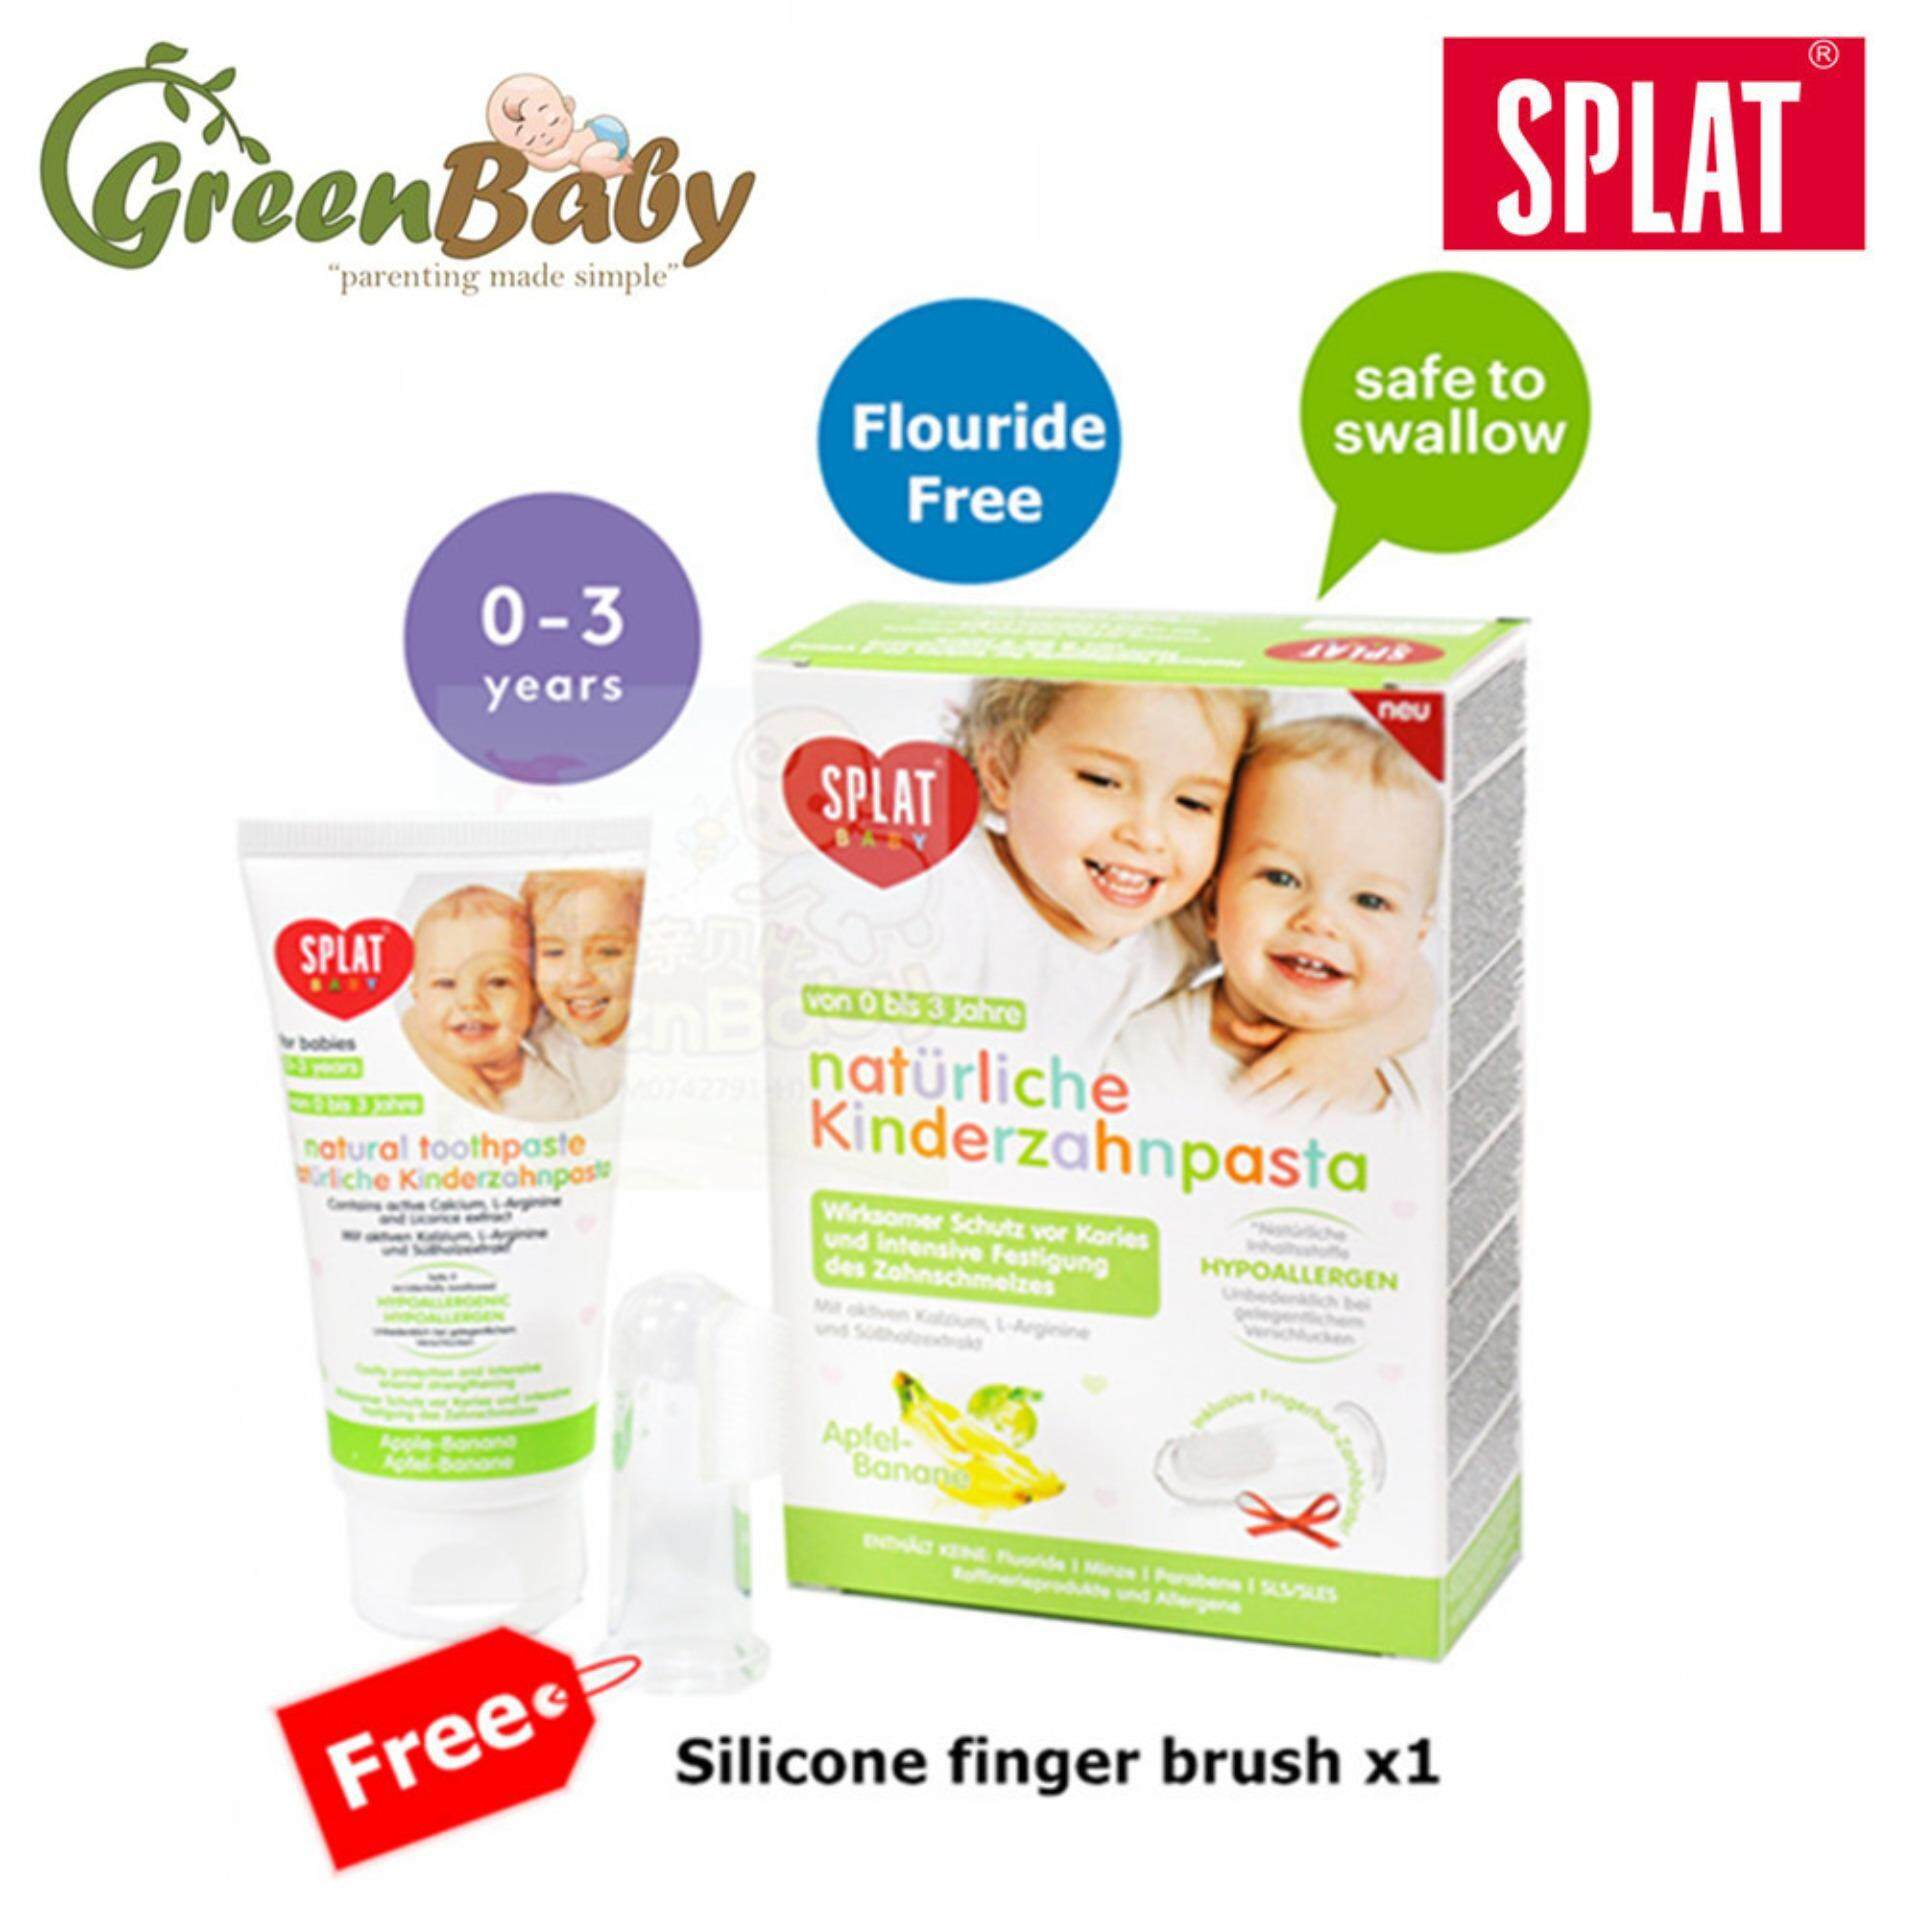 Splat Baby Natural Toothpaste for Babies  40ml  Apple Banana Flavor